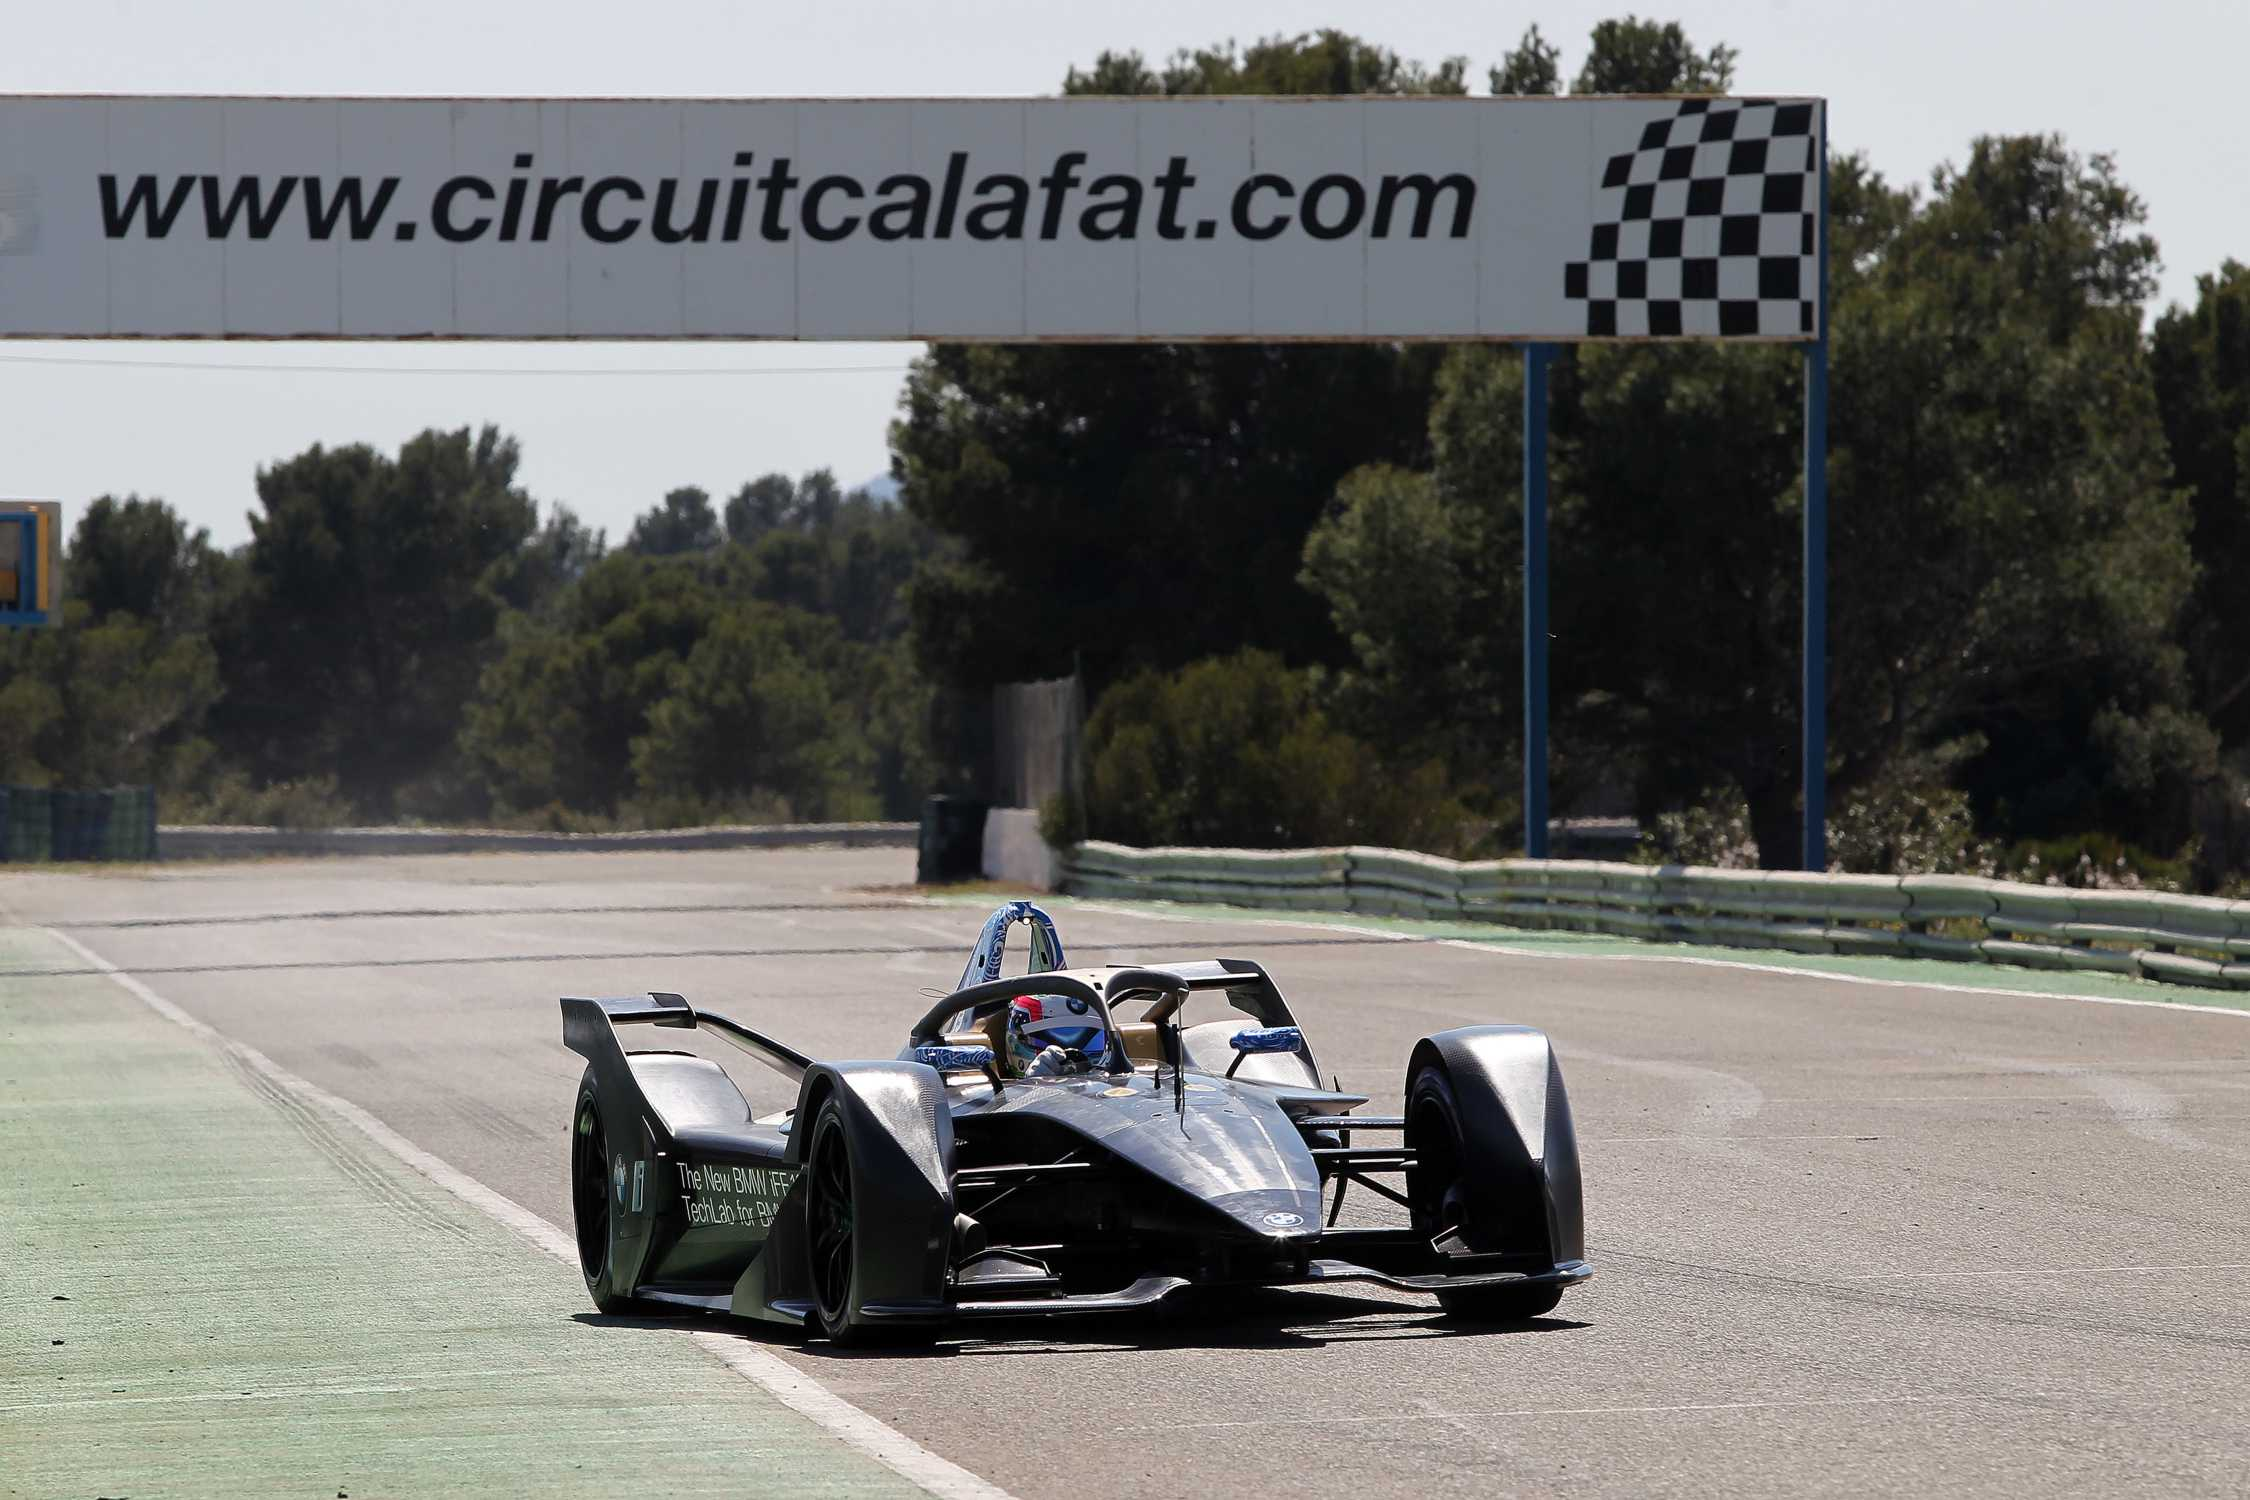 Successful Outing For The Bmw Ife 18 At The Formula E Test